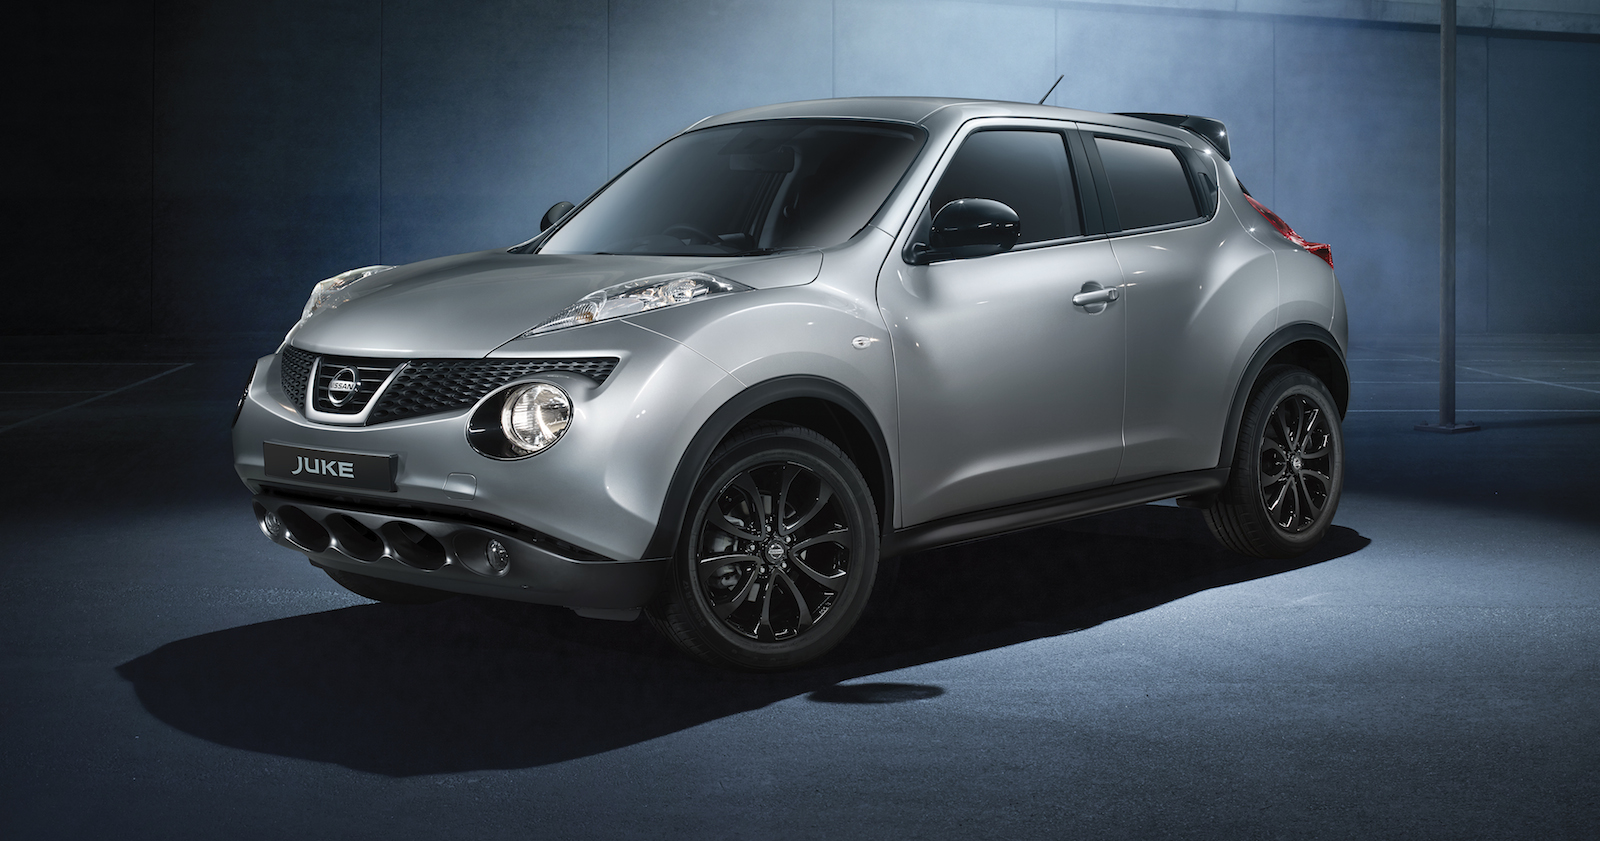 nissan juke midnight special edition styling pack released photos 1 of 2. Black Bedroom Furniture Sets. Home Design Ideas